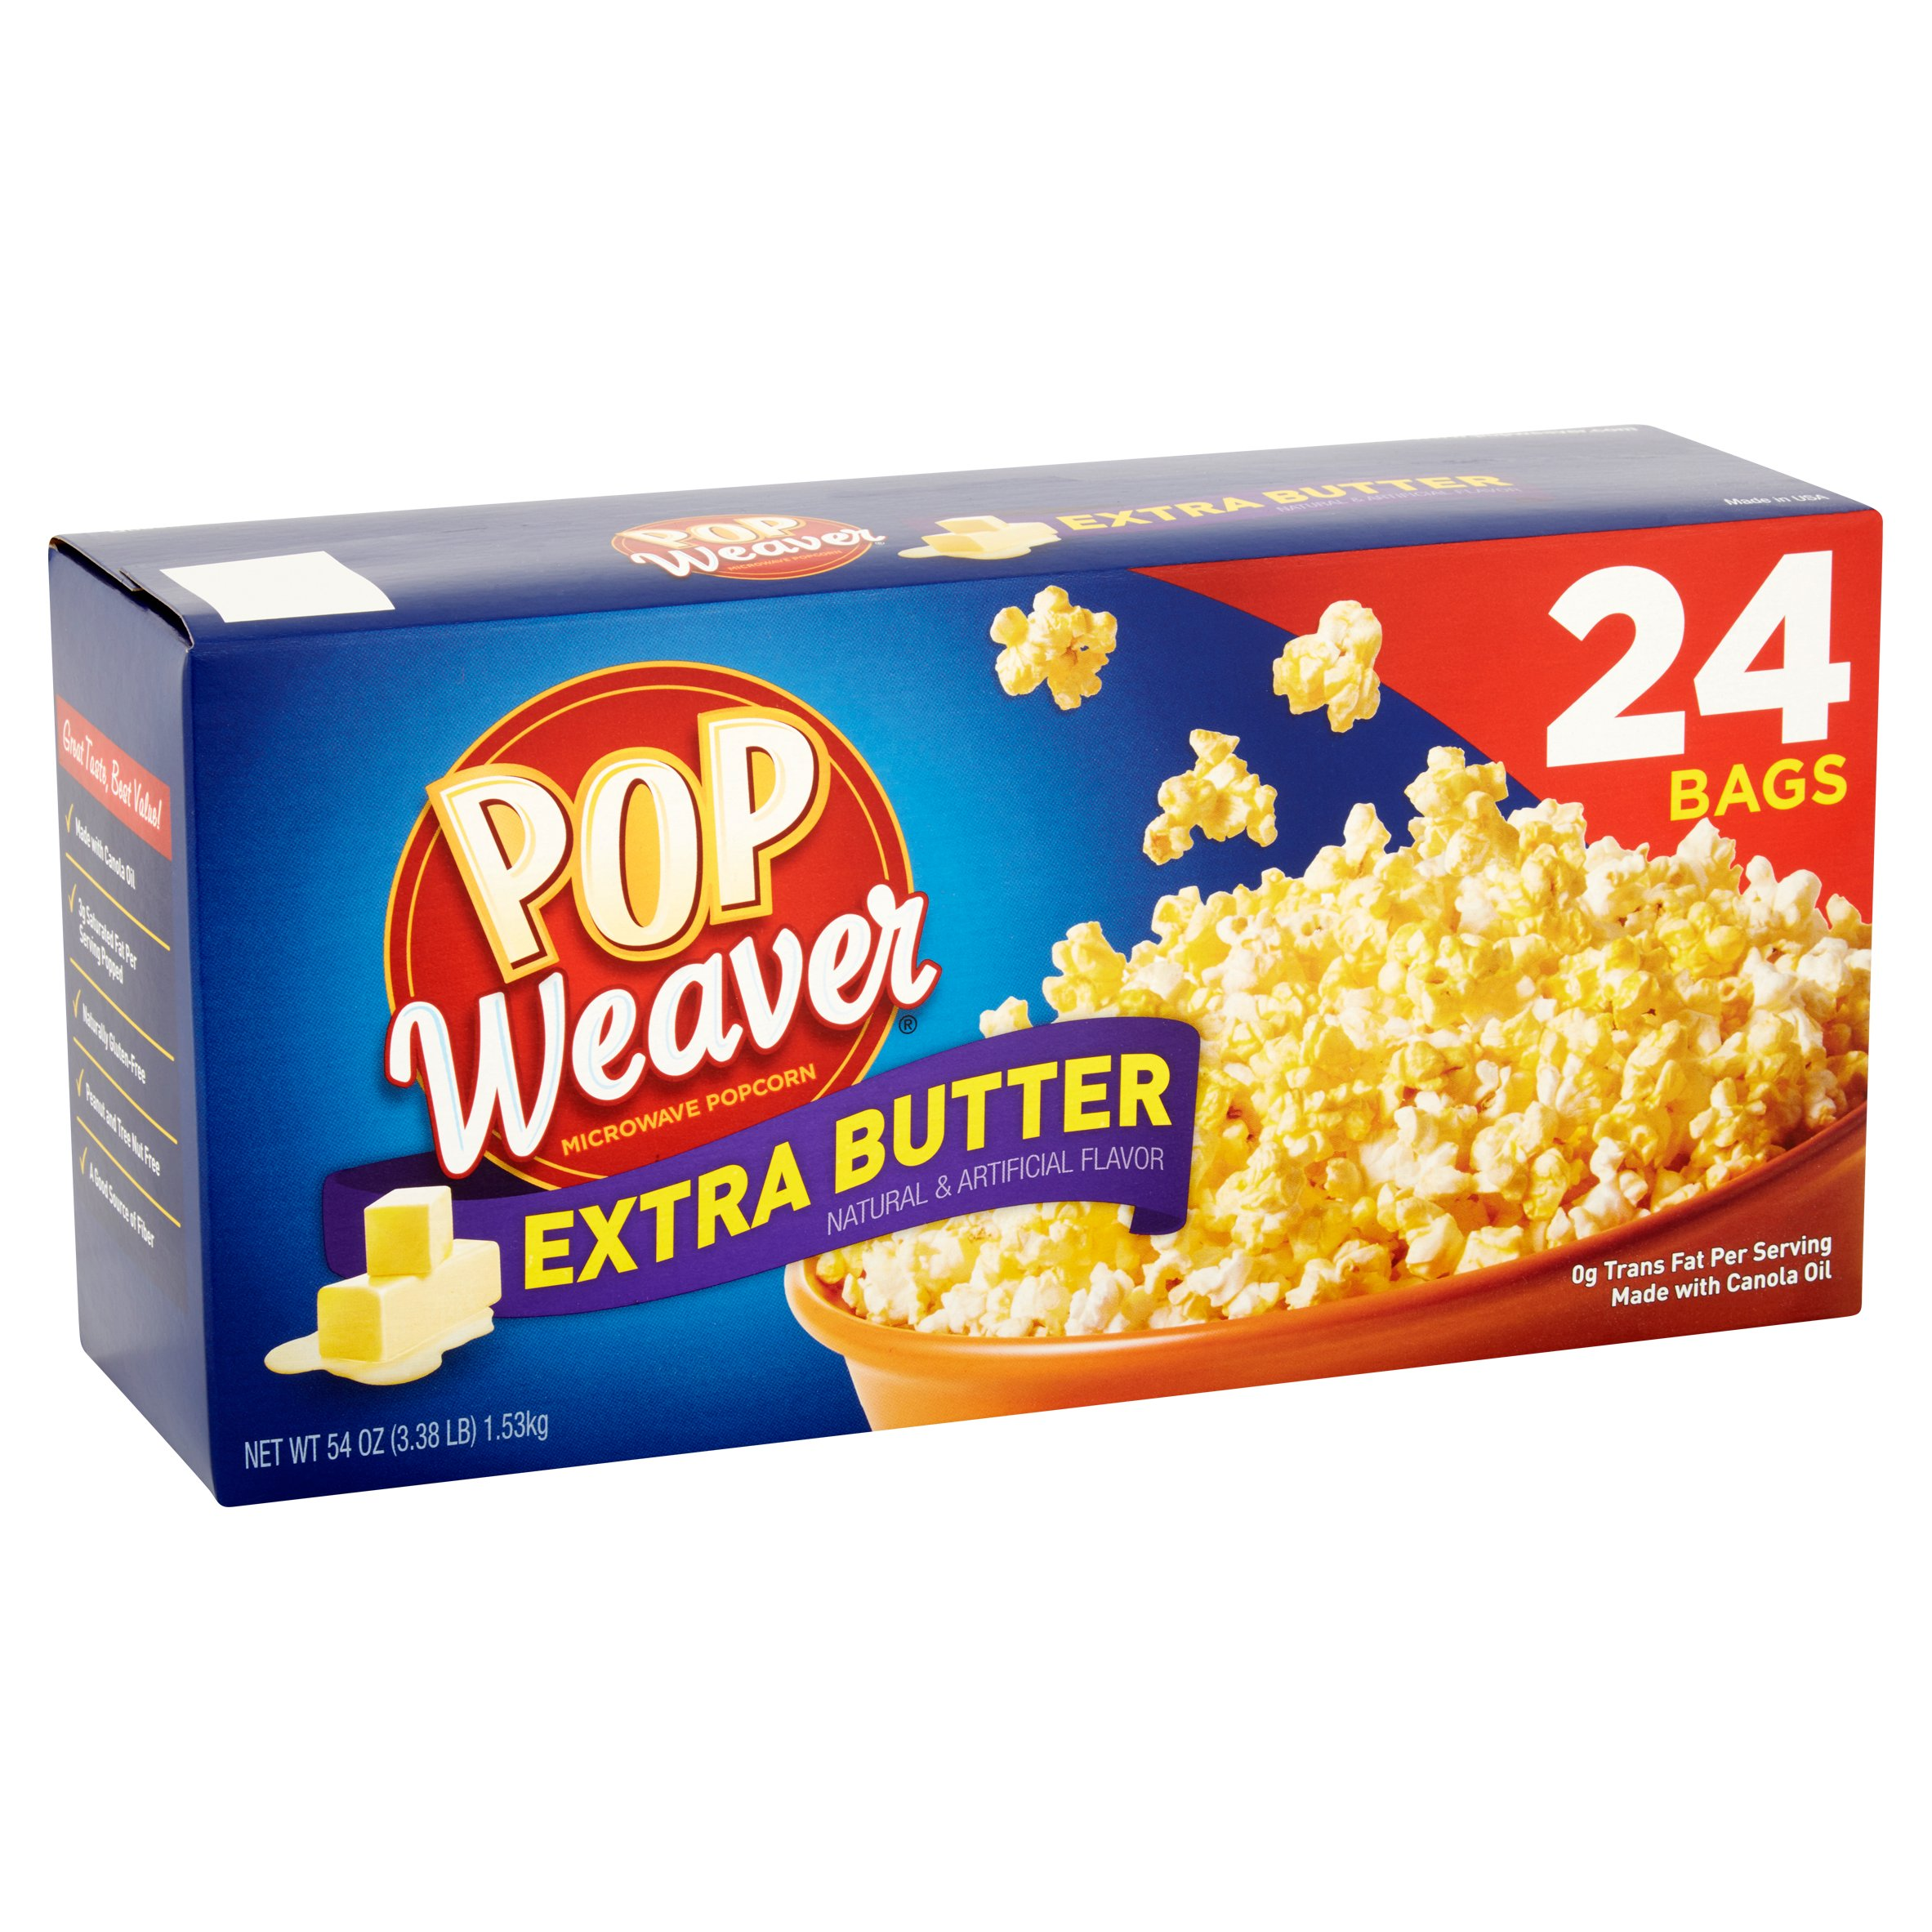 Pop Weaver Extra Butter Microwave Popcorn Bags, 24 count, 54 oz